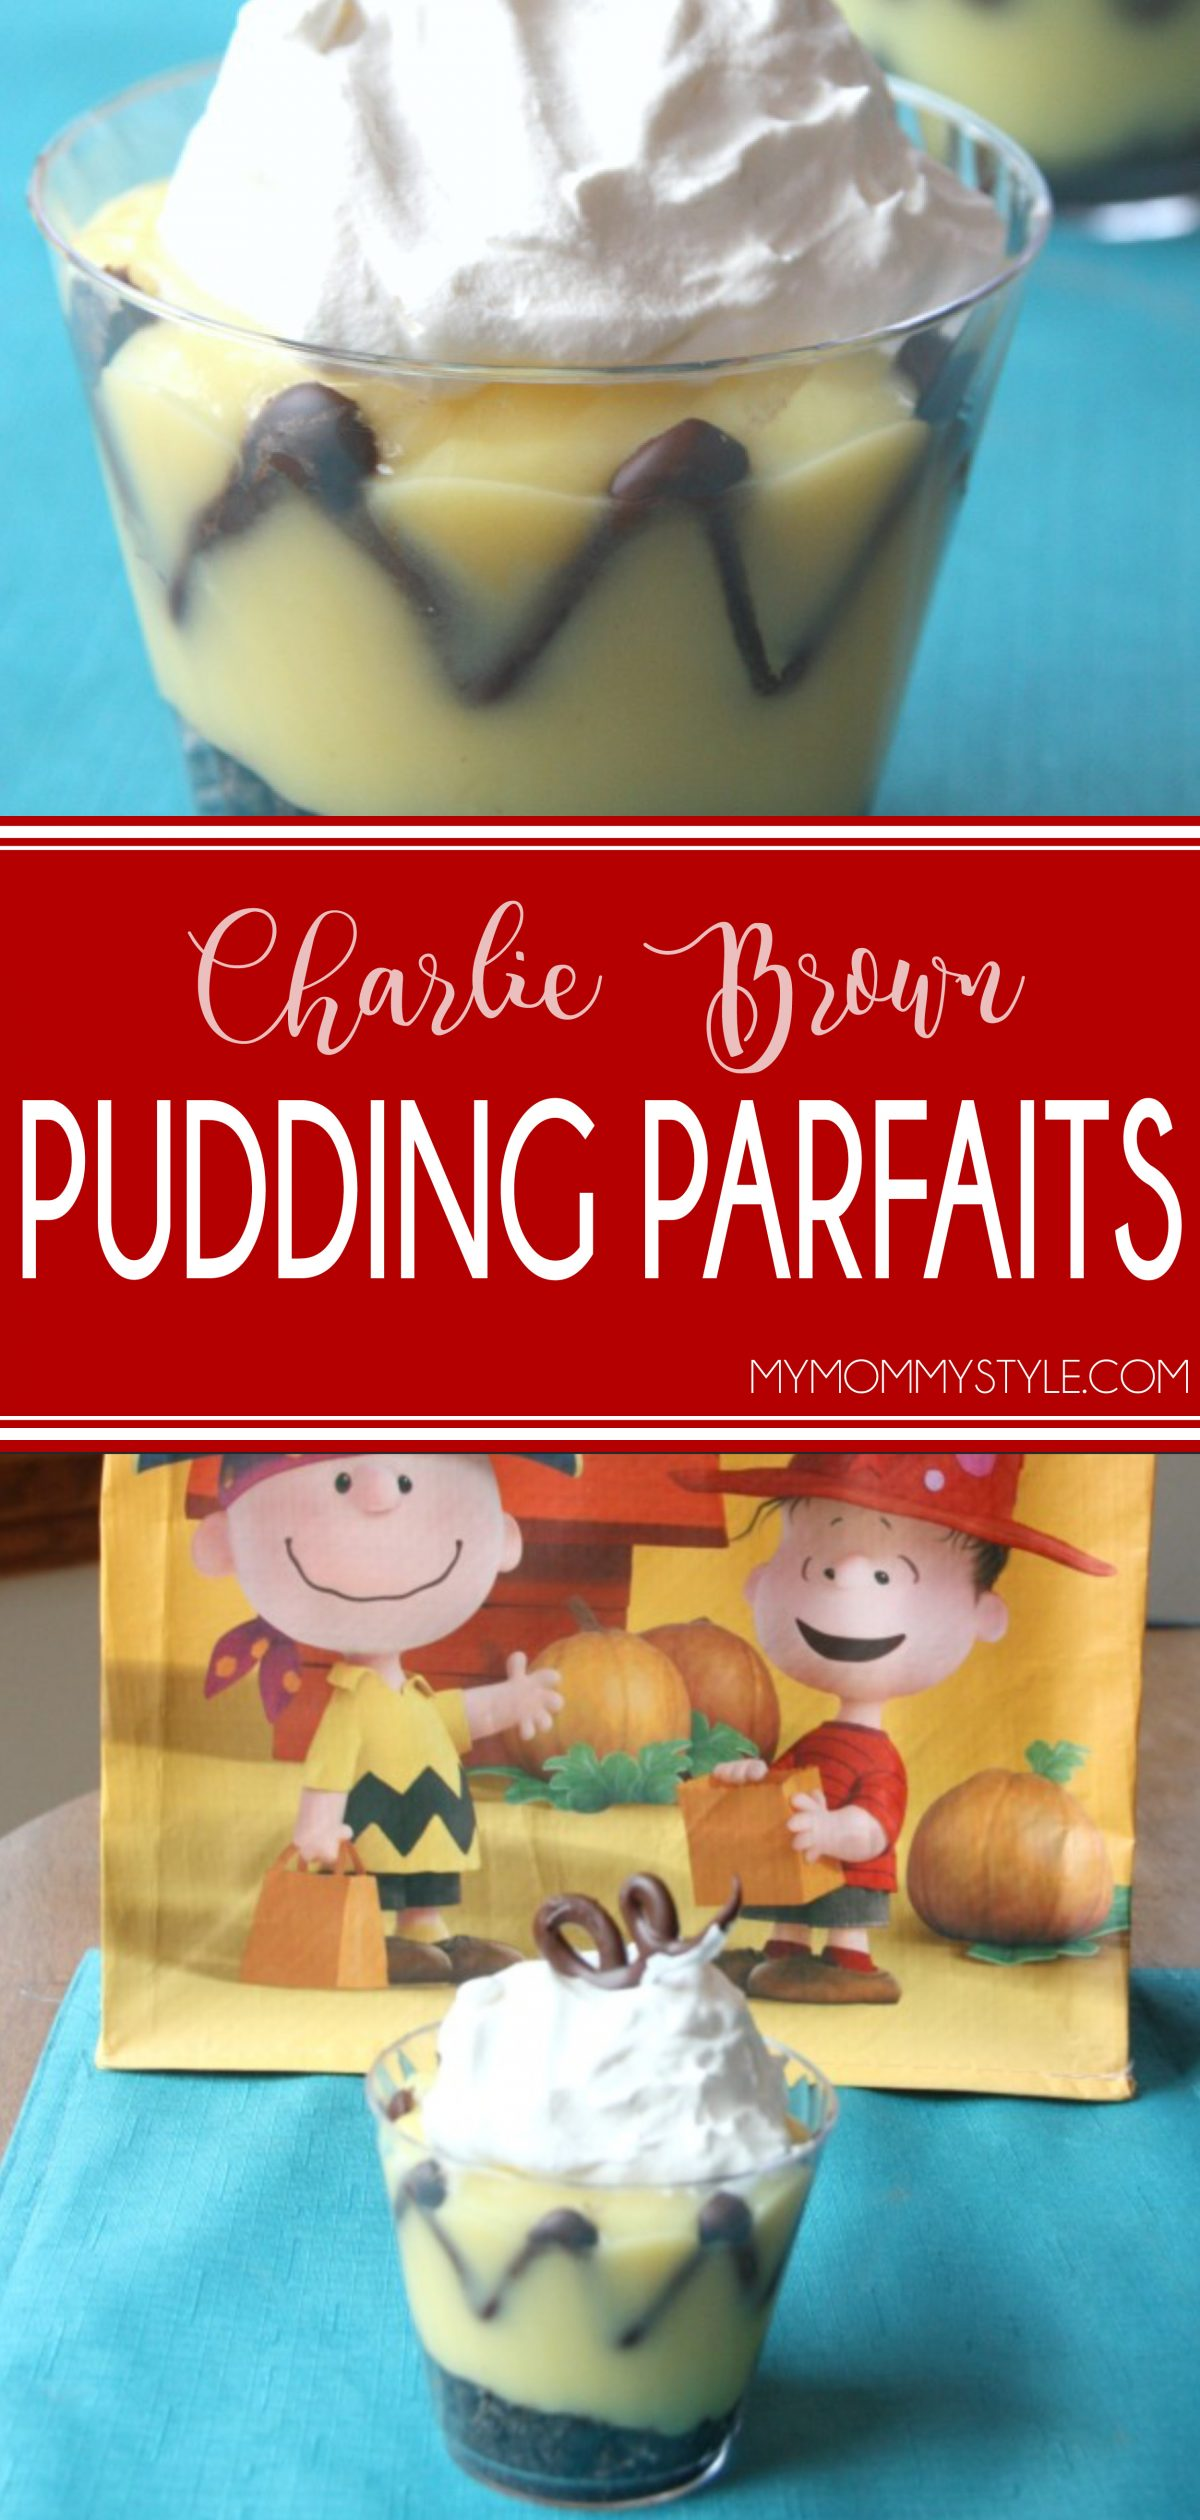 Charlie Brown pudding parfaits. They're fun and cute and they are so easy to make. The chevron stripe was made with melted chocolate chips that are piped into the chevron pattern and placed in the freezer for a few minutes. via @mymommystyle